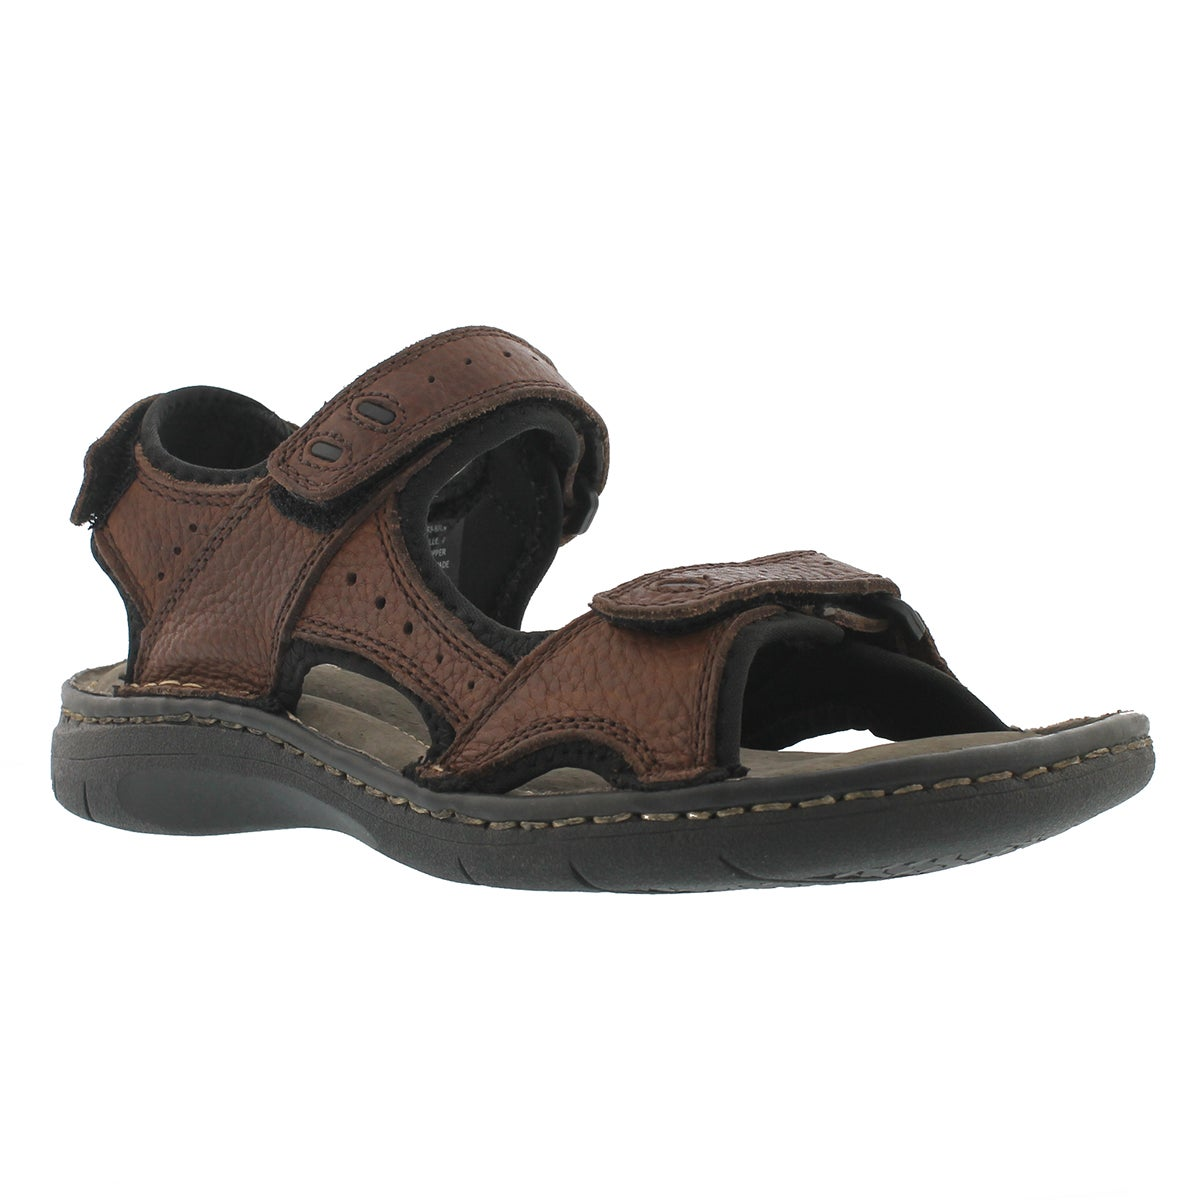 Men's CURTIS 3 brown 3 strap sandals